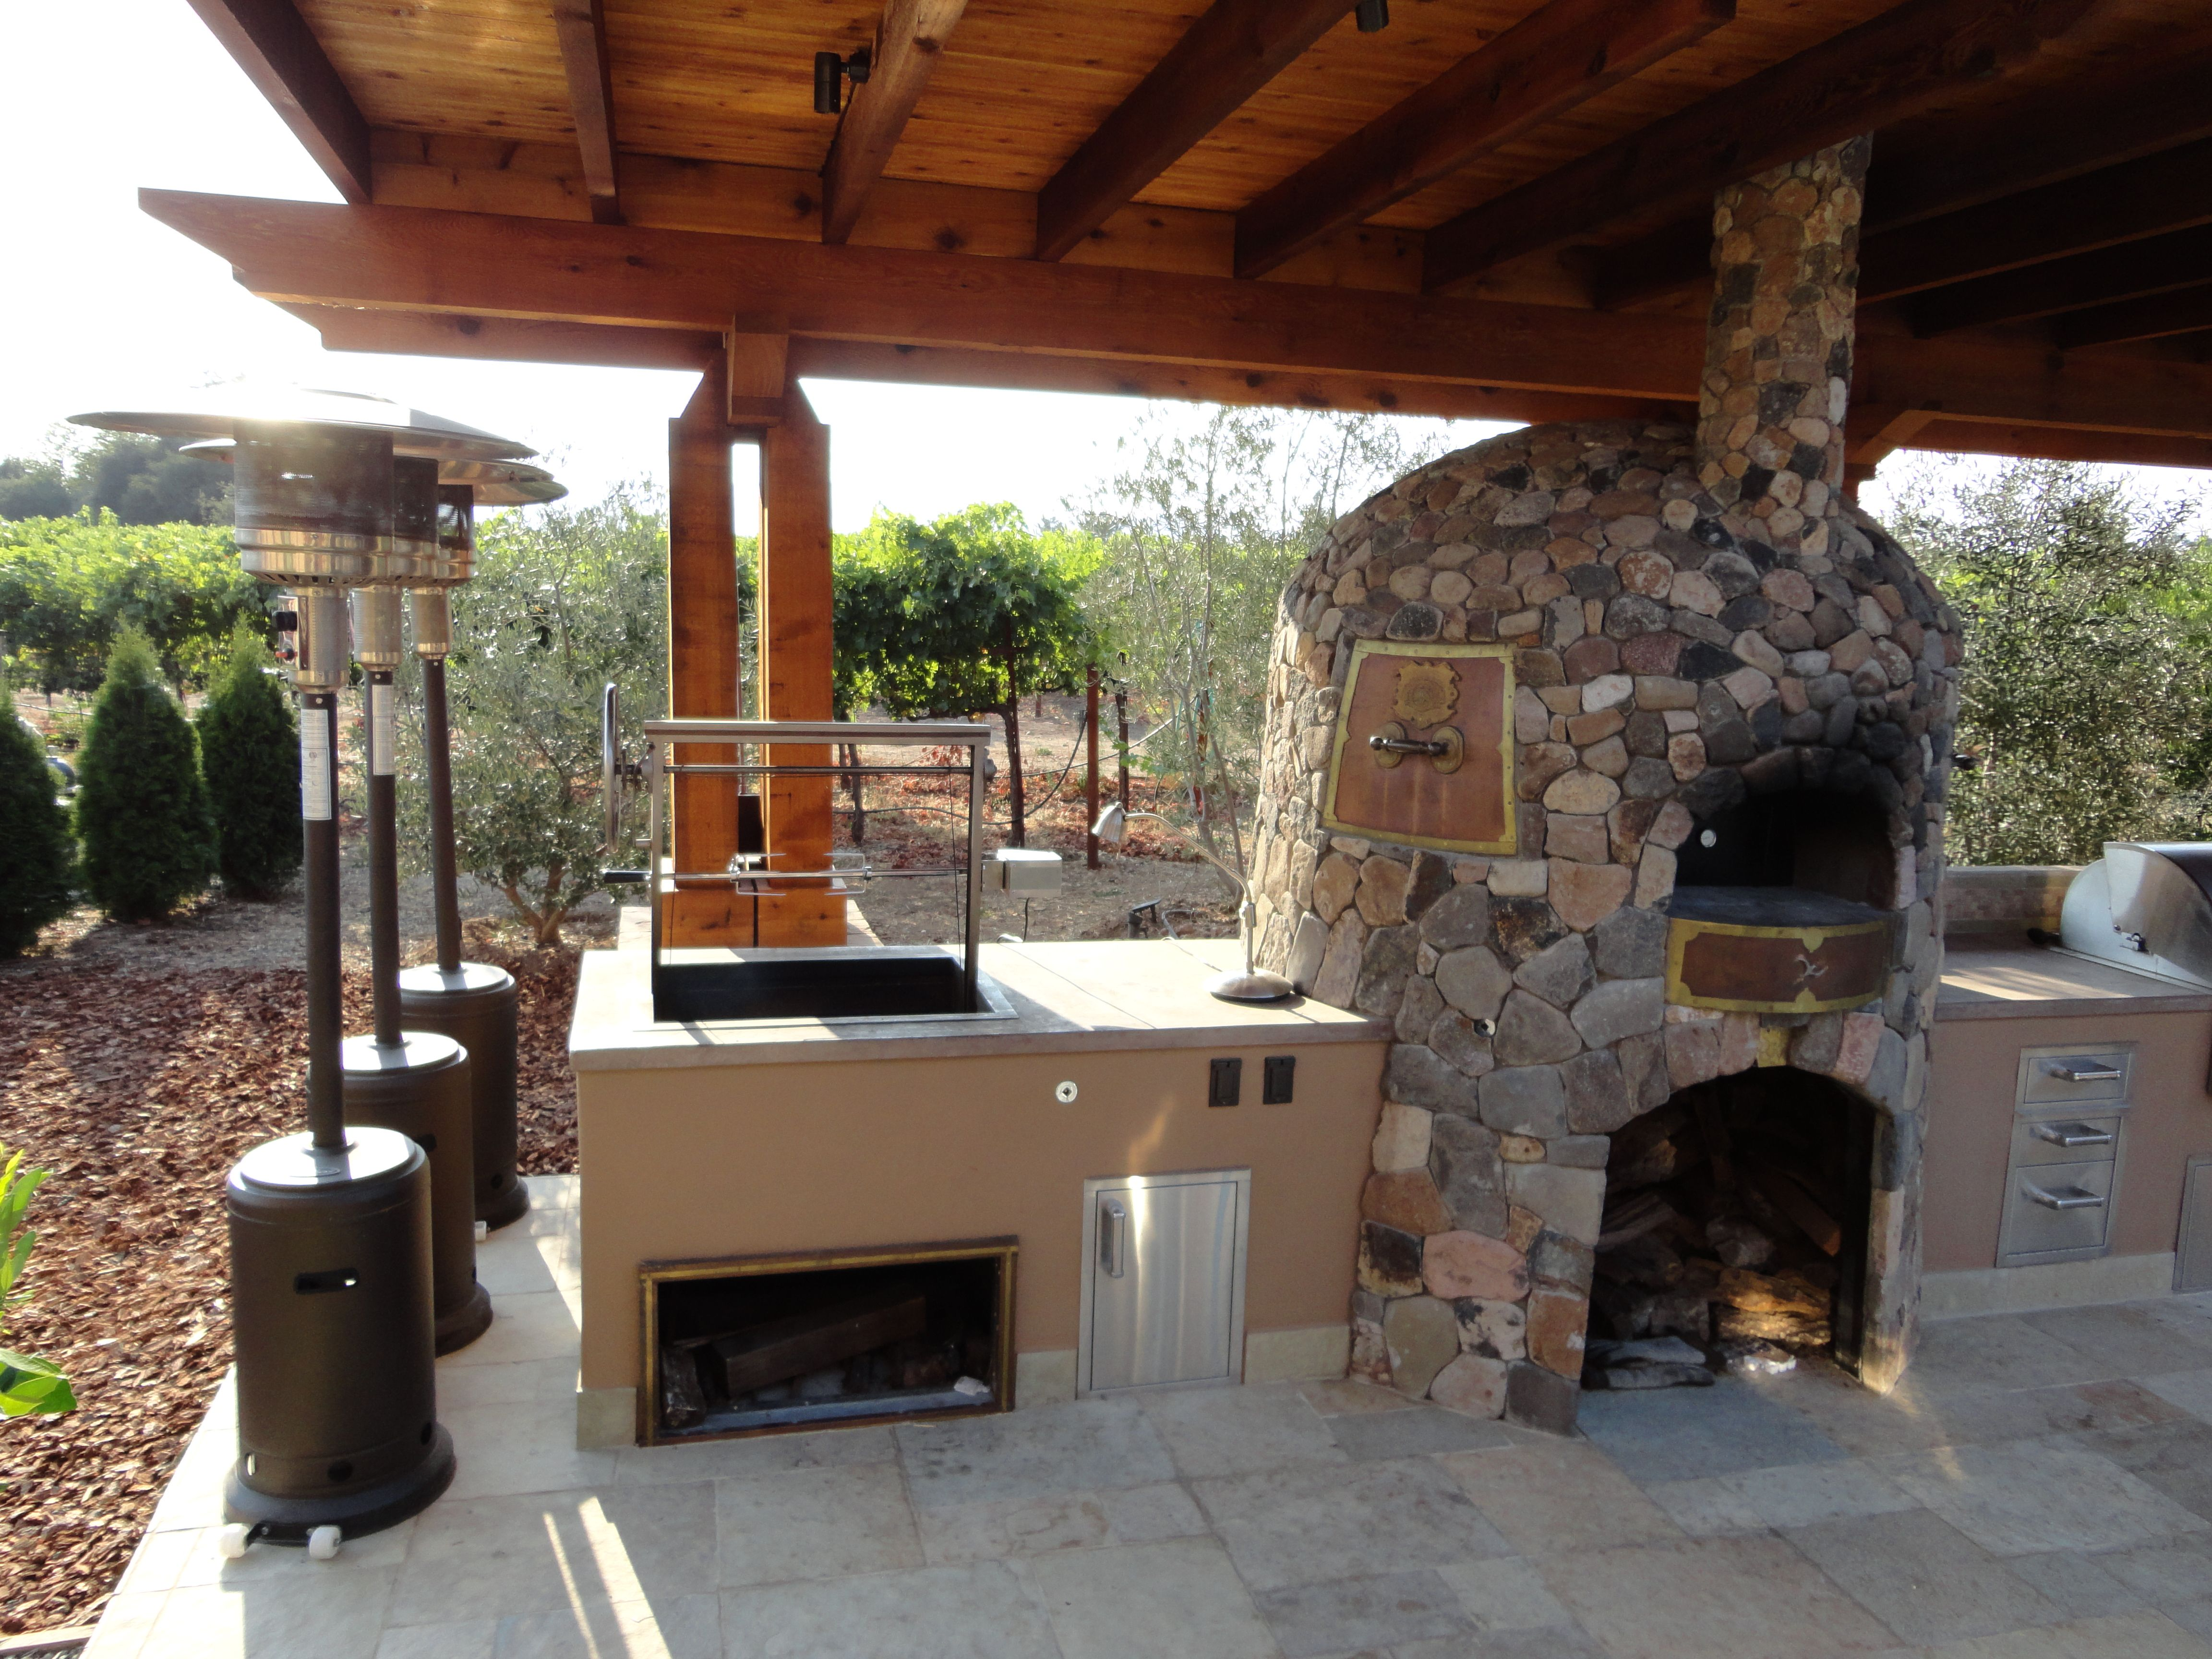 Outdoor Kitchen Designs With Pizza Oven Image Kitchen Design Outdoor Pizza Oven 4608x3456 33 Ou Backyard Pizza Oven Outdoor Kitchen Brick Pizza Oven Outdoor